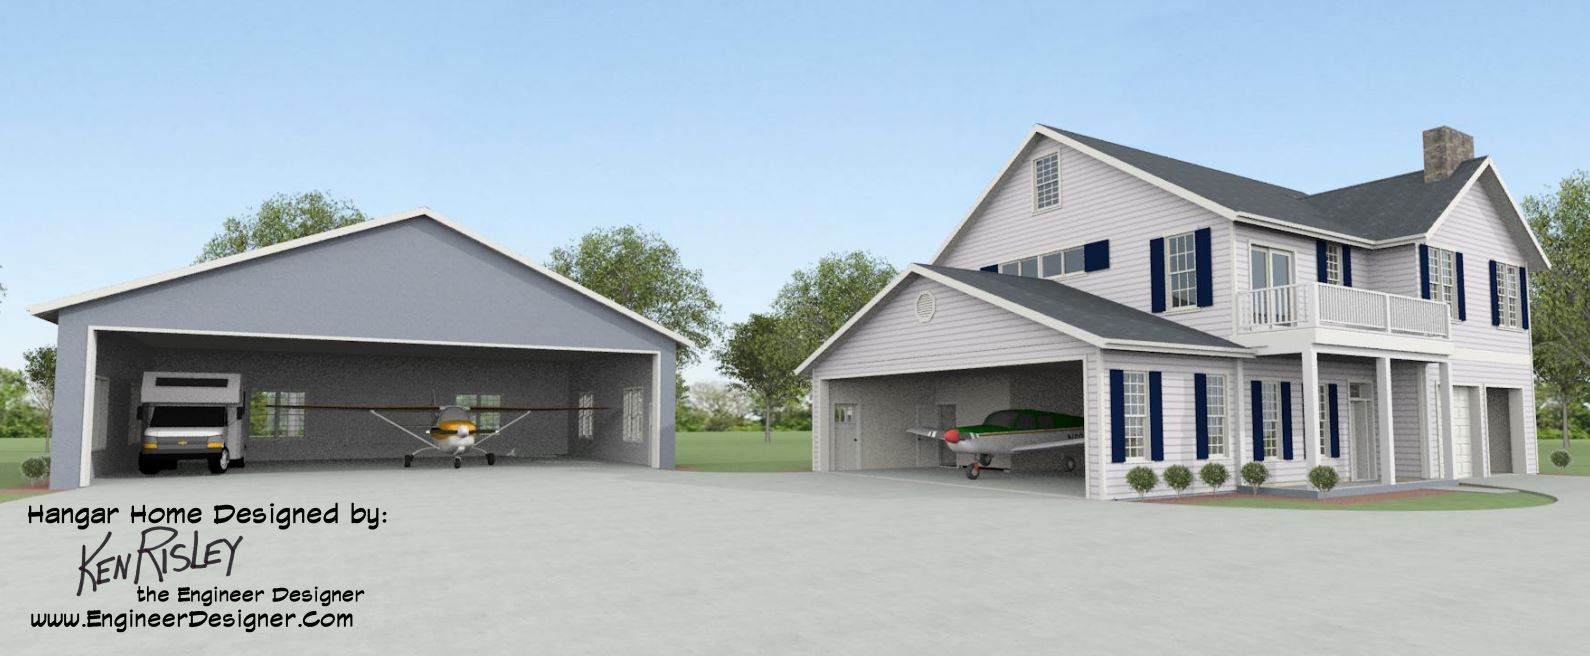 ... Texas Home Designs. Pearland Regional Airport To Add Hangars Houston  Chronicle Hangar